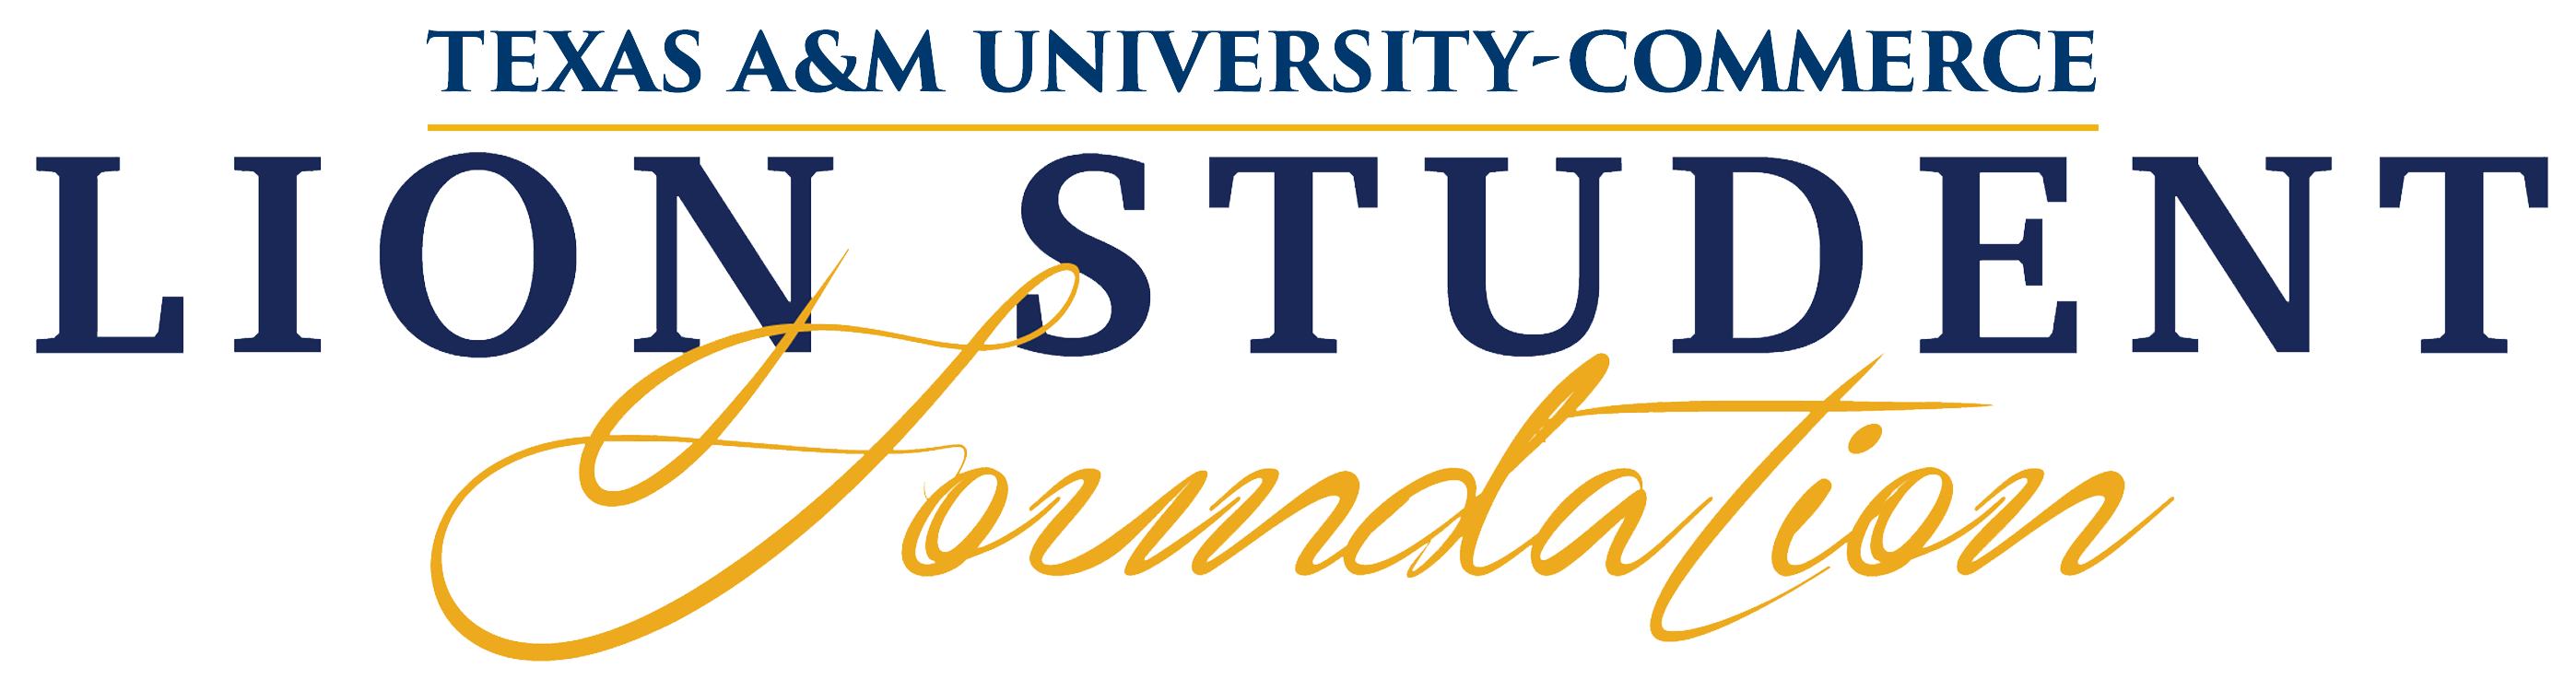 Lion Student Foundation Logo